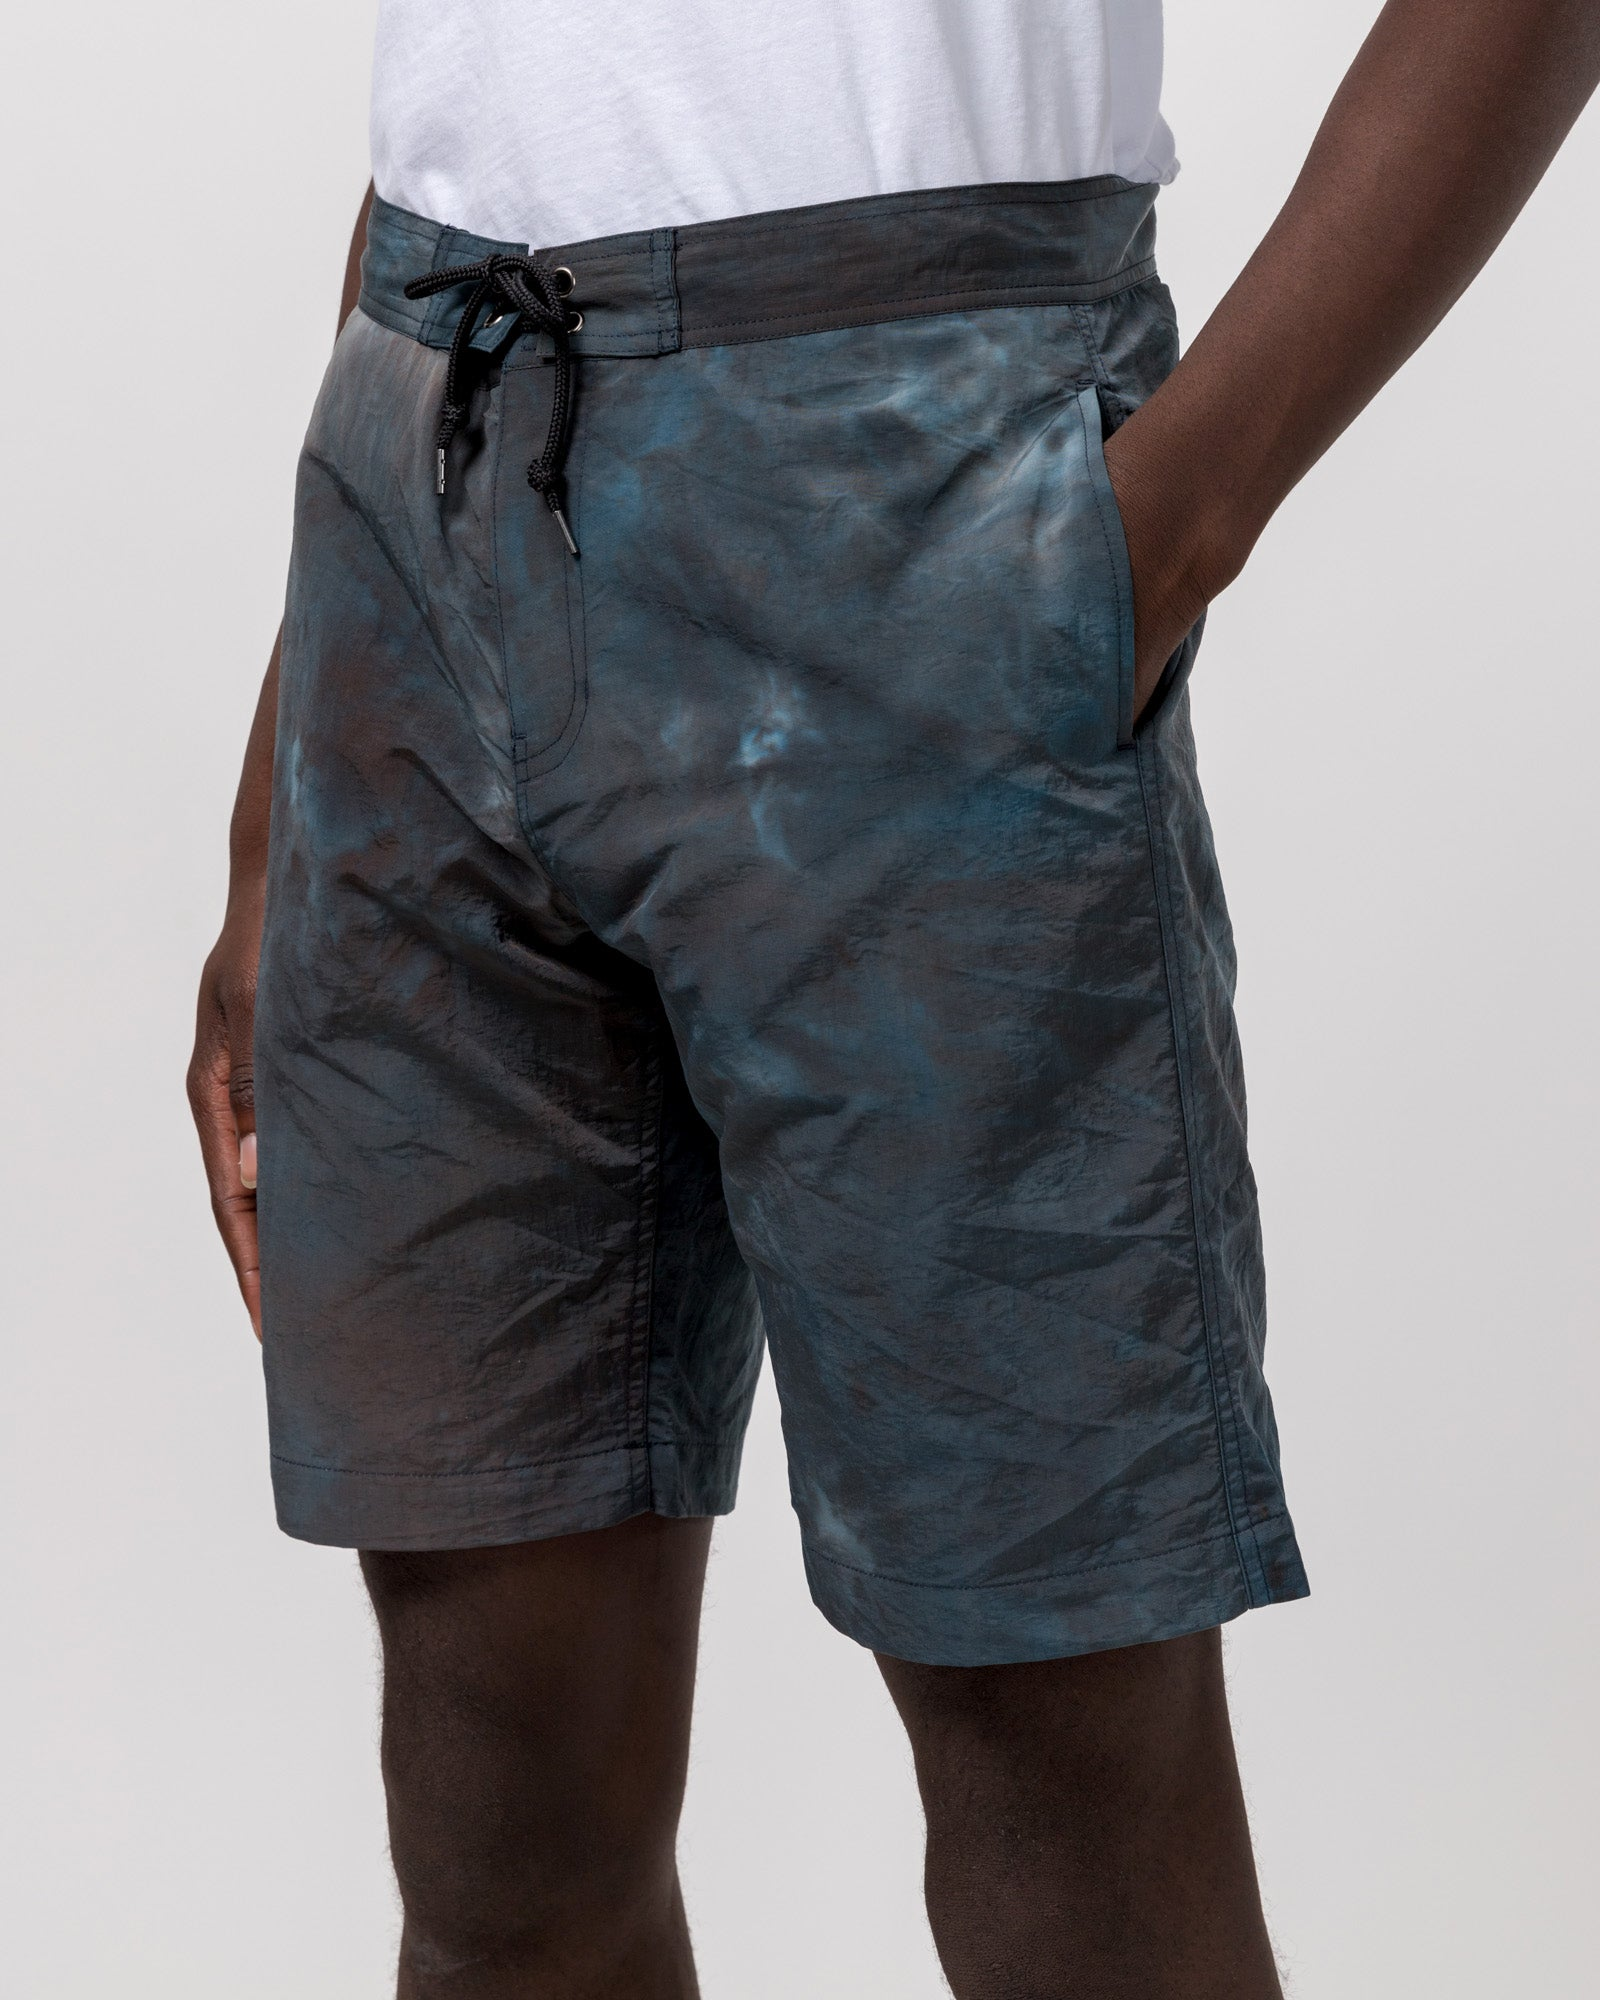 Solar Board Shorts in Teal Tie Dye